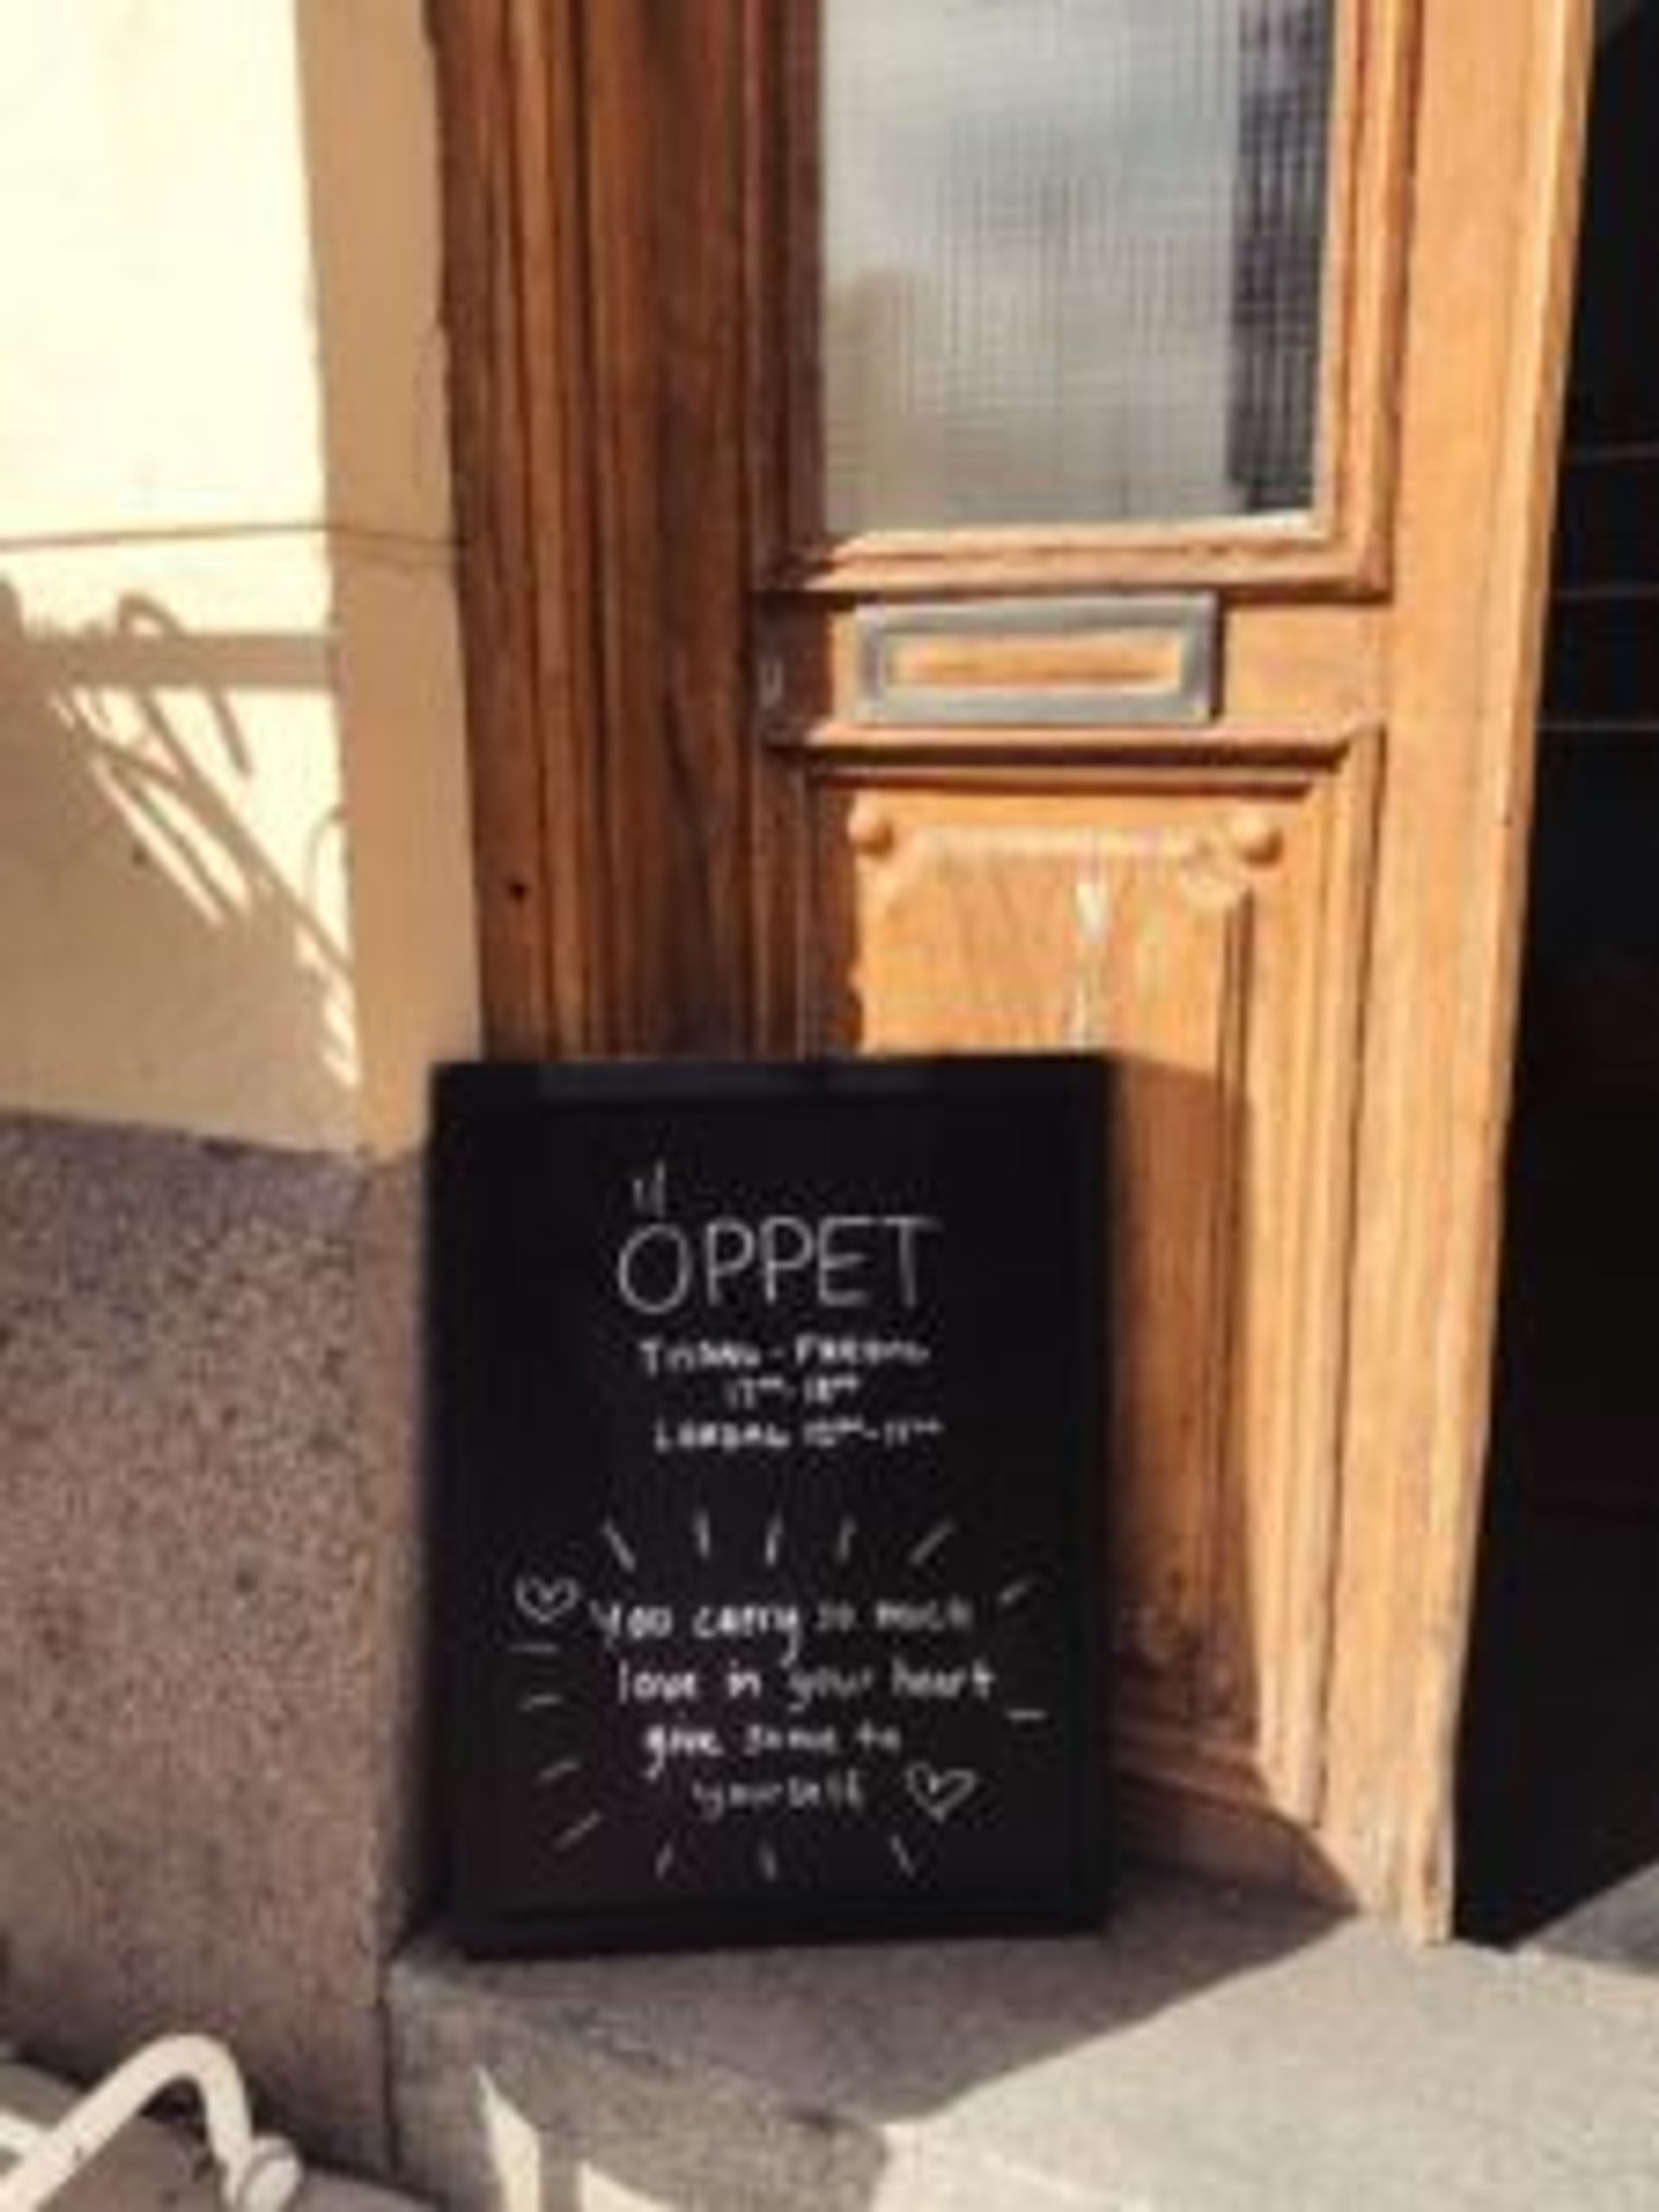 A wooden door with a sign outside. The sign says 'Öppet' which means Open in Swedish.